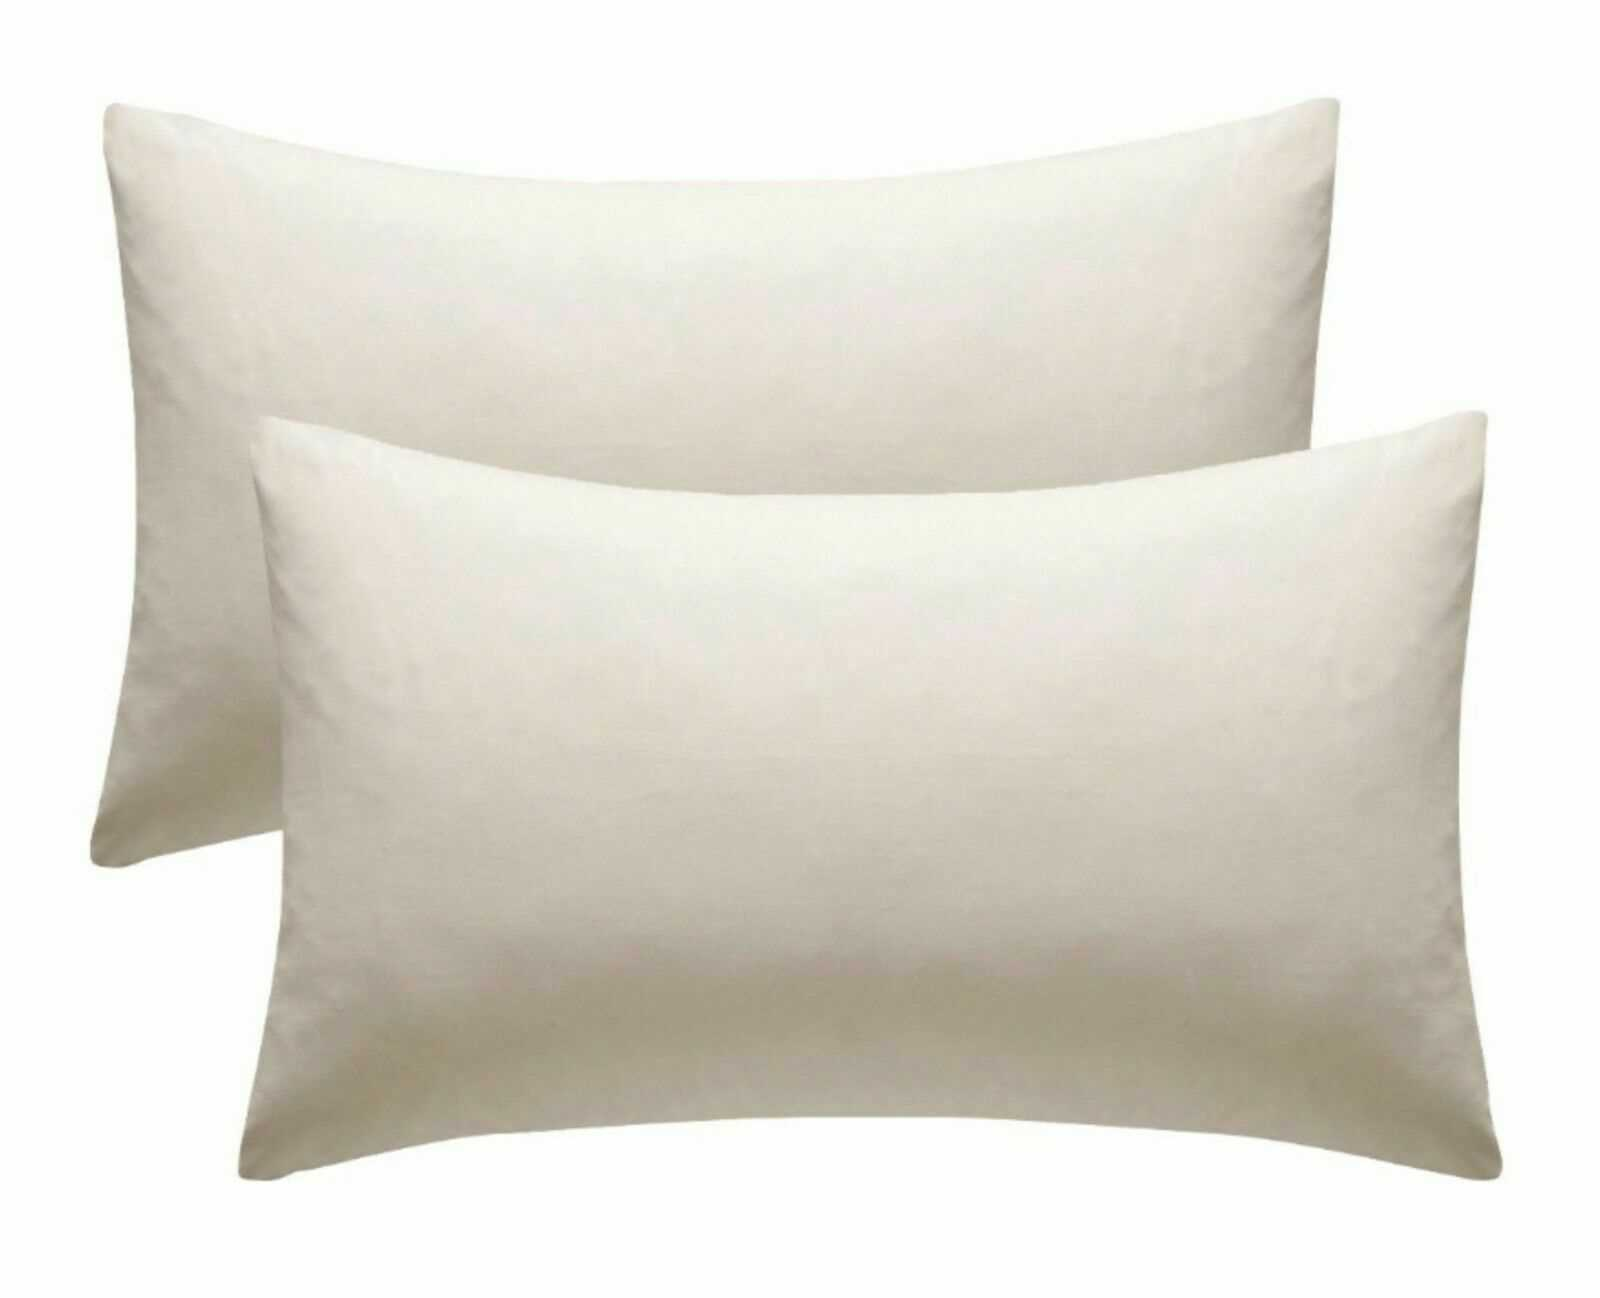 Cream Plain Pillow Cases Cotton Pair Housewife Case Cover 100% Luxury Pack Covers